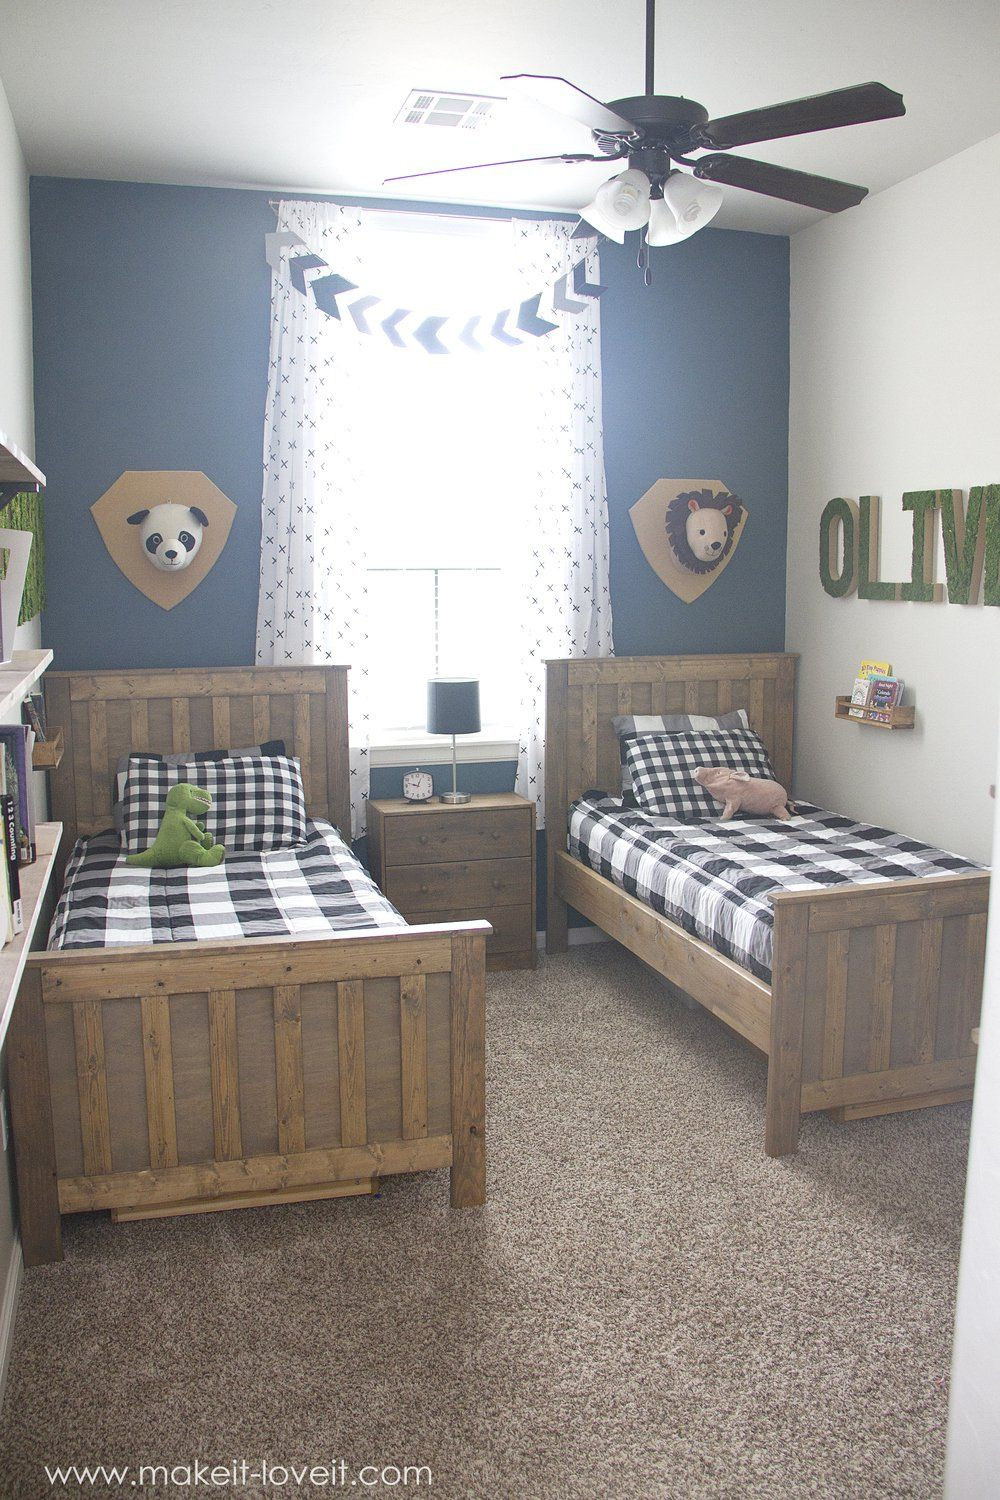 Ideas For A Shared Boys Bedroom Yay All Done Boys Shared Bedroom Small Kids Room Big Boy Bedrooms